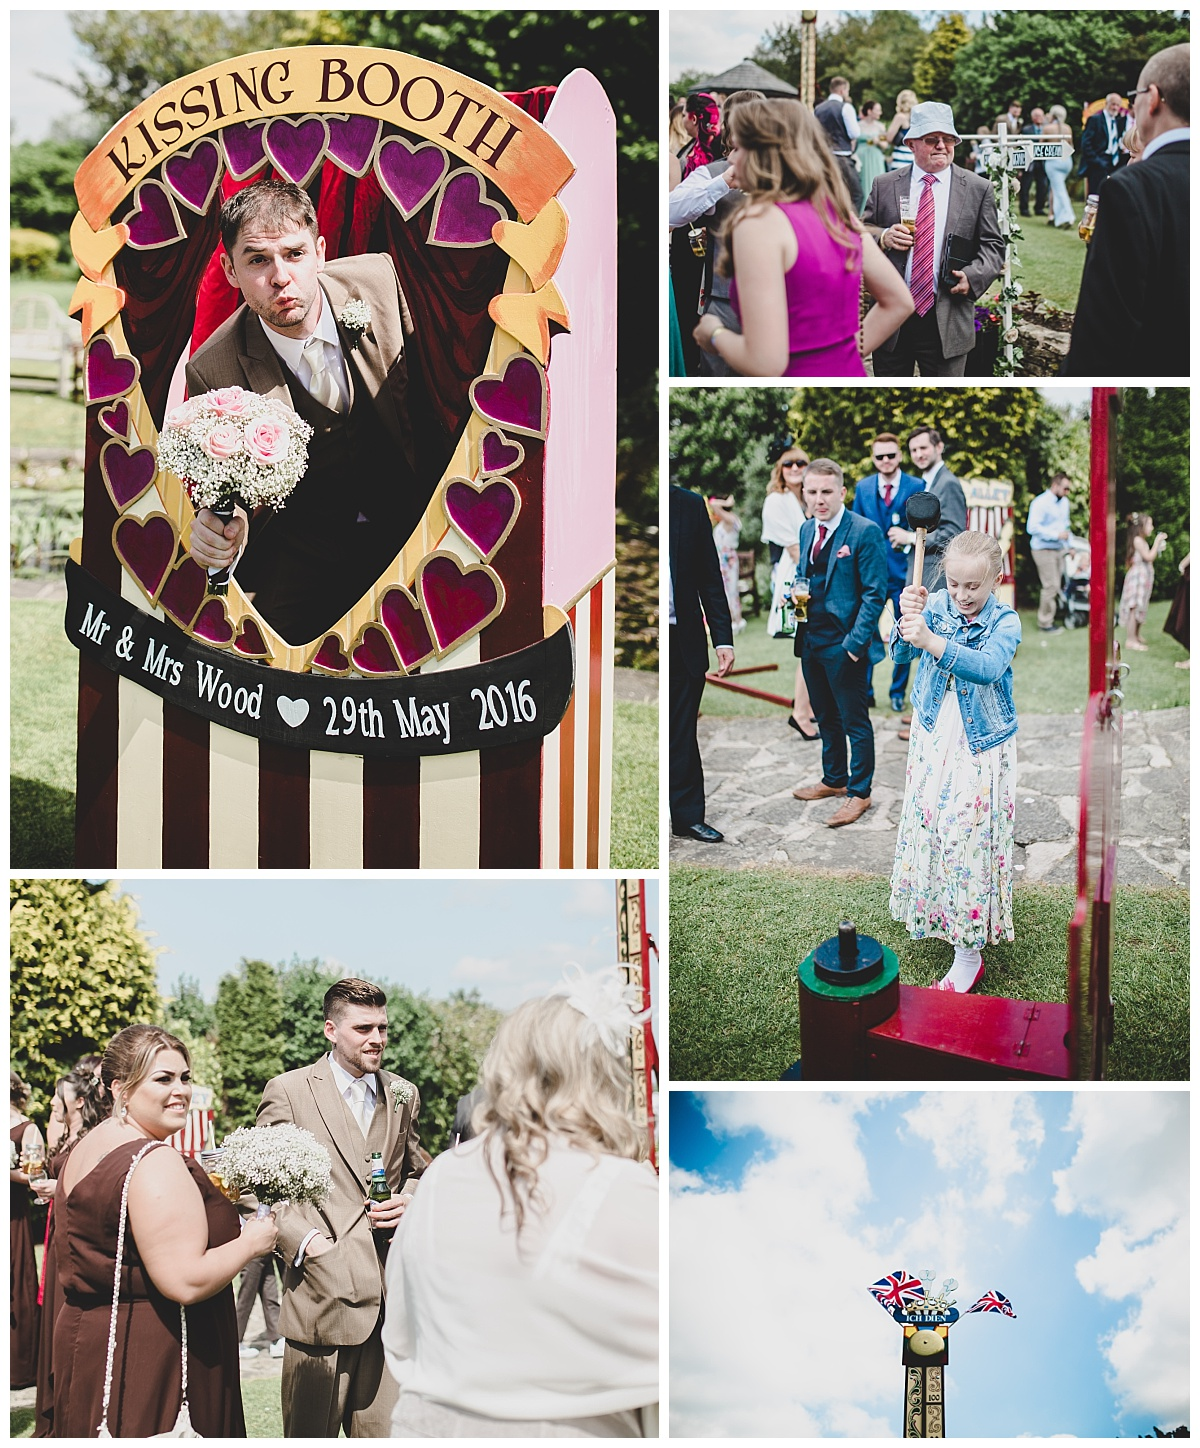 vintage themed wedding - games on the lawn